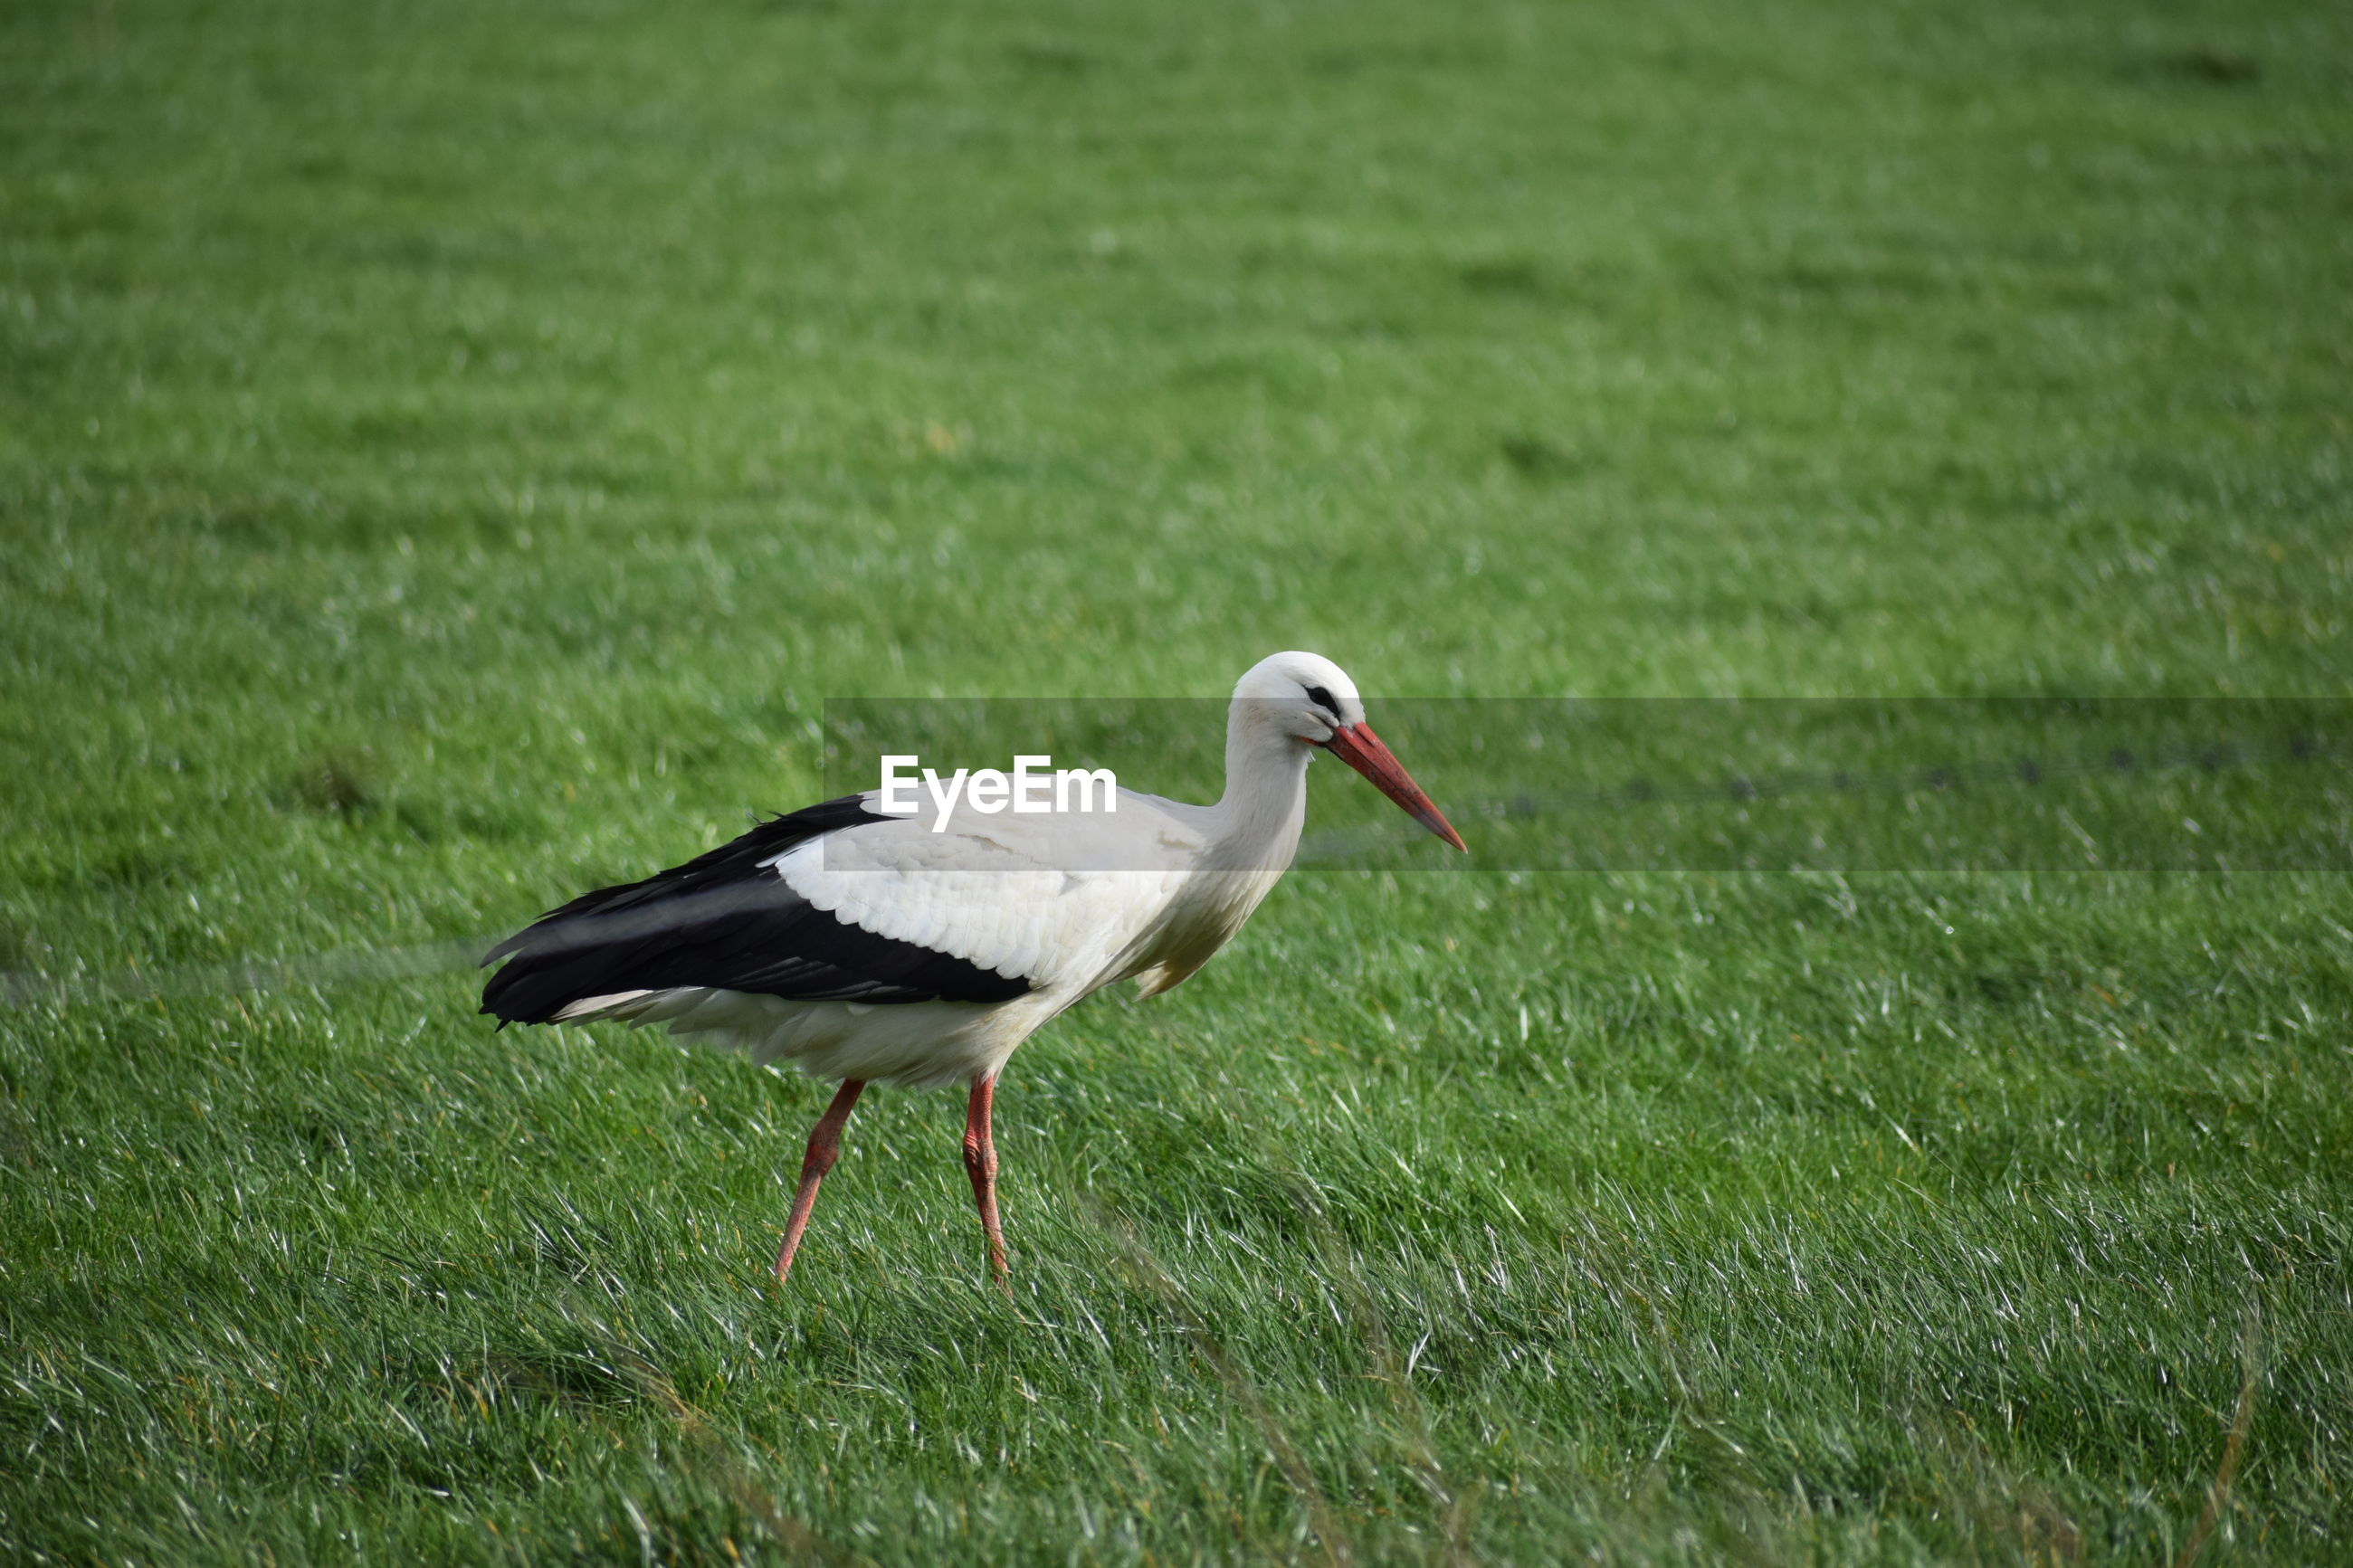 stork / ooievaar Grass Animal Themes One Animal Animal Bird Animals In The Wild Vertebrate Animal Wildlife Plant Green Color Land Nature Field No People Day Side View Outdoors Focus On Foreground Walking Grass Area Storm Cloud Ooievaar